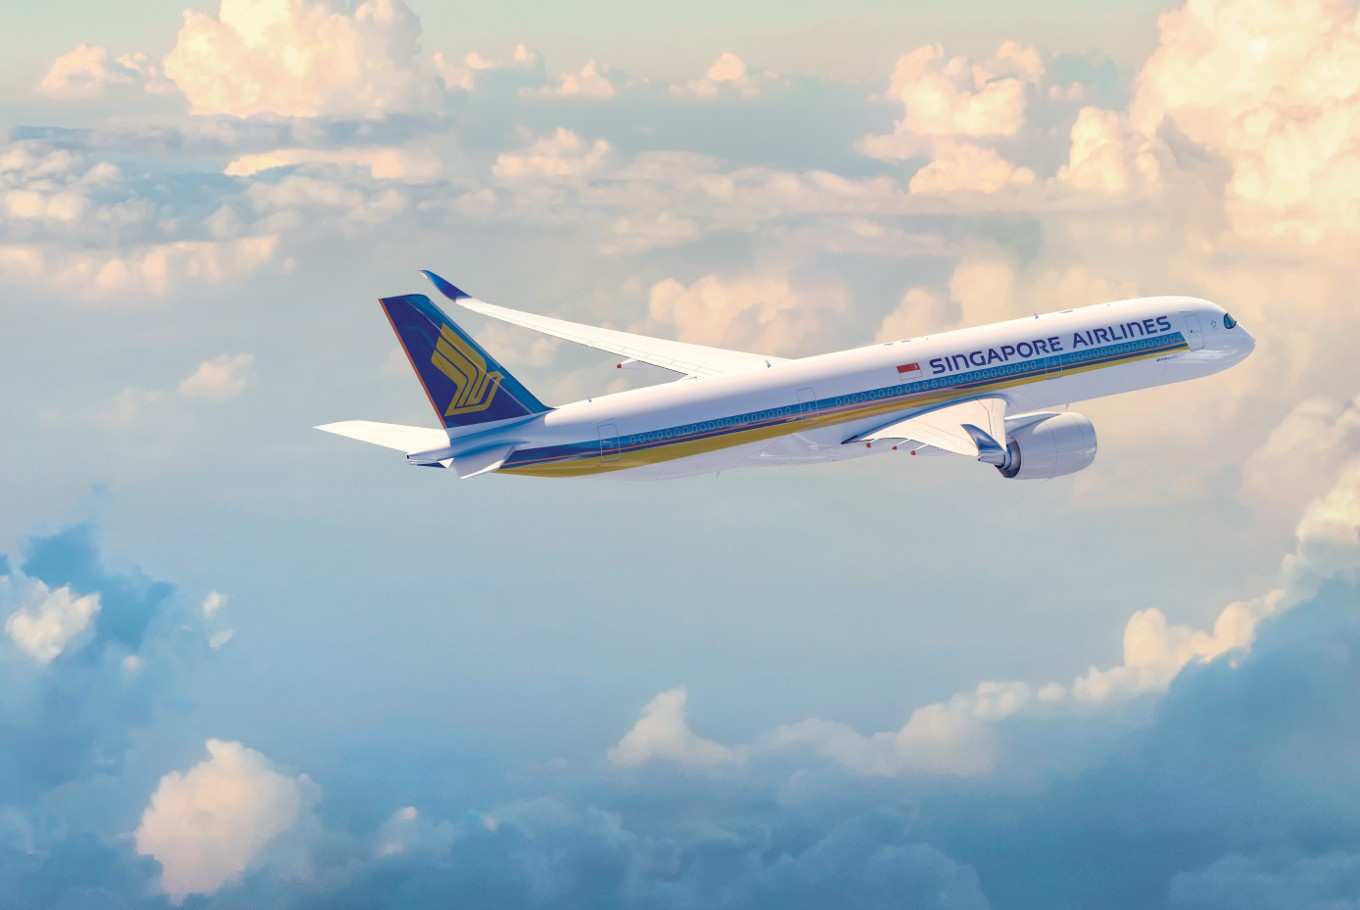 Singapore Airlines freezes hiring, looking at asking staff to go on voluntary no-pay leave